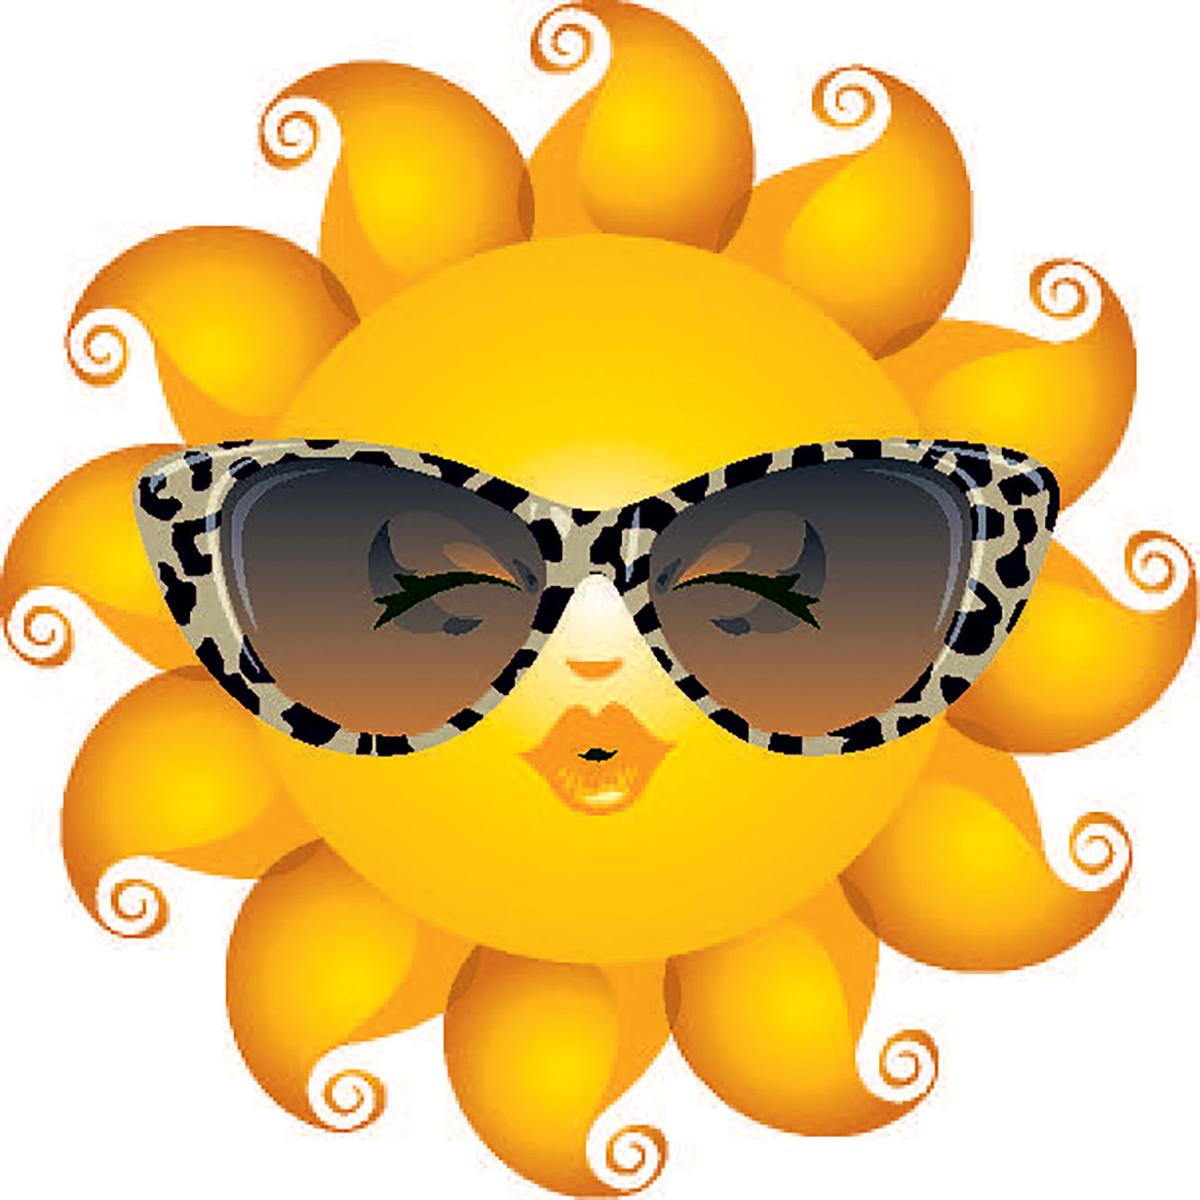 Hankinson gearing for fun in the sun with Summer Fest News Monitor